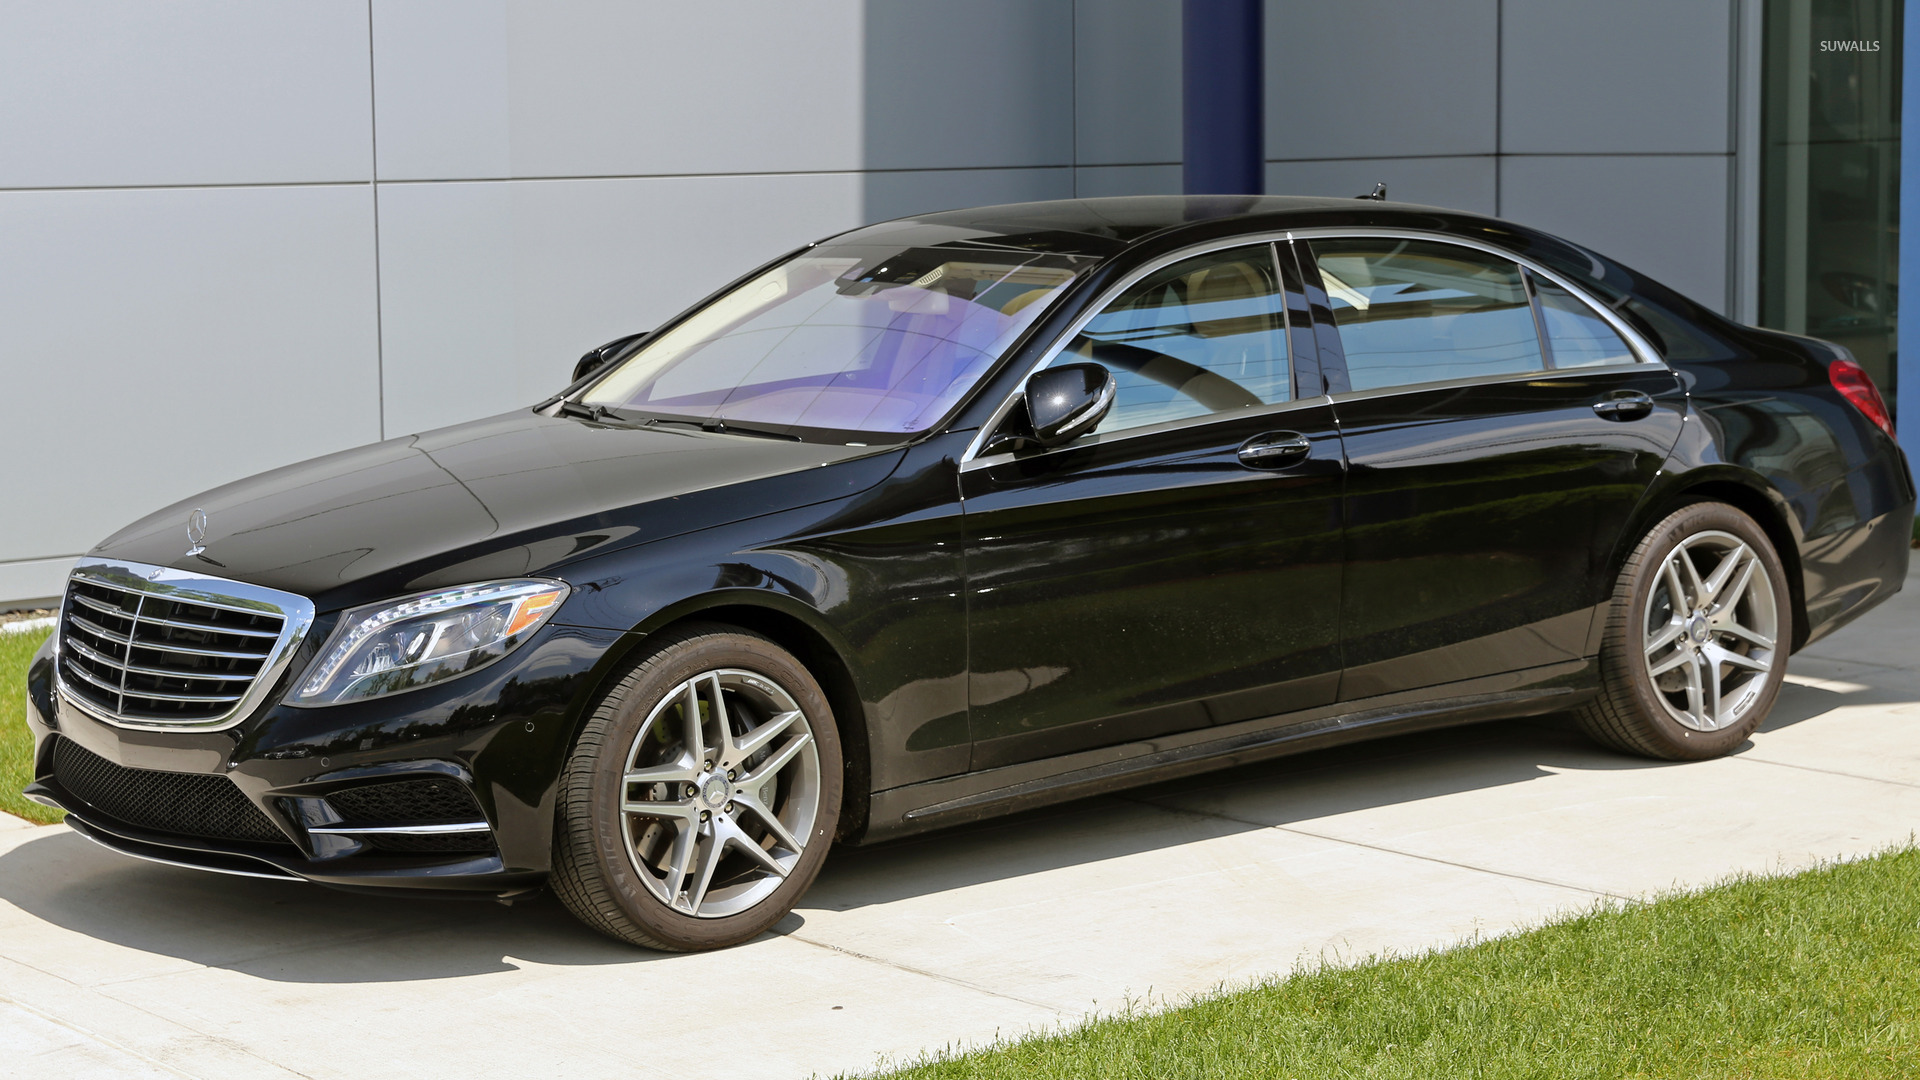 2014 mercedes benz s550 wallpaper car wallpapers 42219 for Mercedes benz s550 coupe 2014